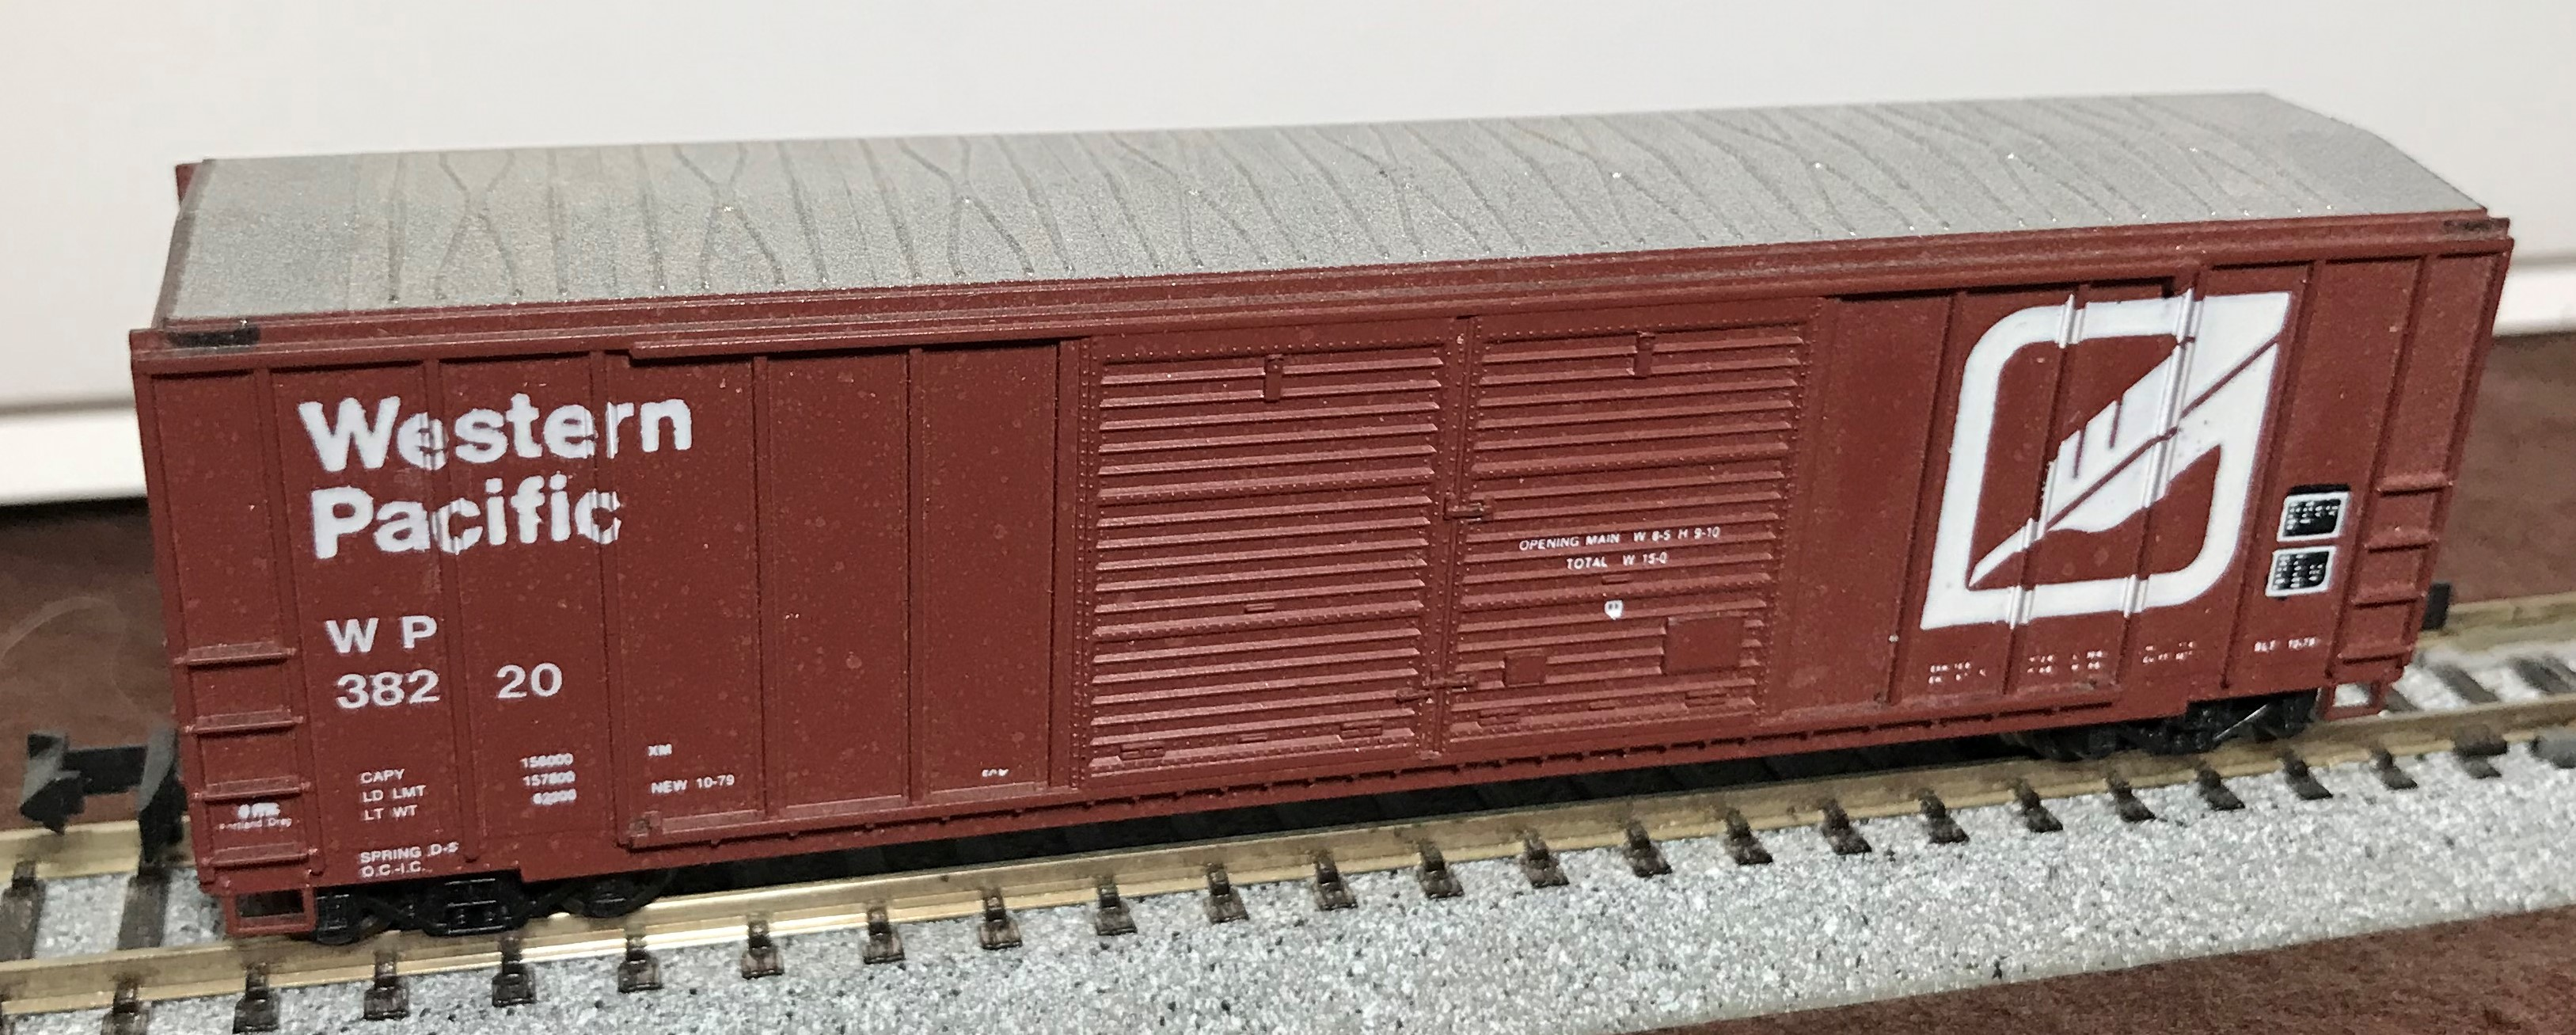 N Scale - Roundhouse - 8281 - Boxcar, 50 Foot, FMC, 5077 - Western Pacific - 38220